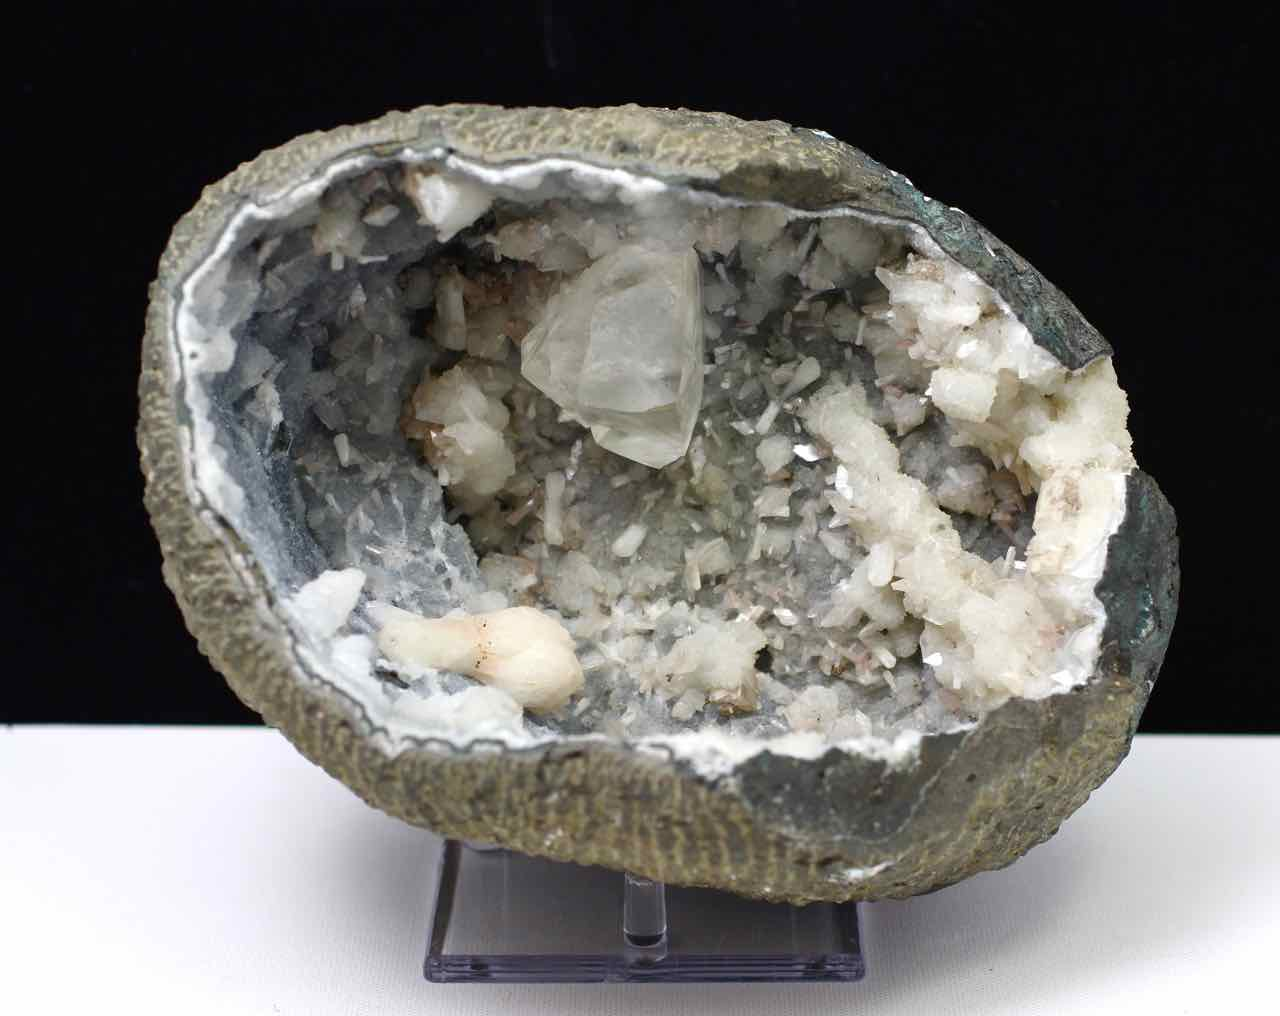 Calcite, Stilbite, Heulandite, Chalcedony, Quartz, Matrix, Zeolite, Minerals, Natural Stone, Rock, Natural Crystal, Collectible, India, Earth